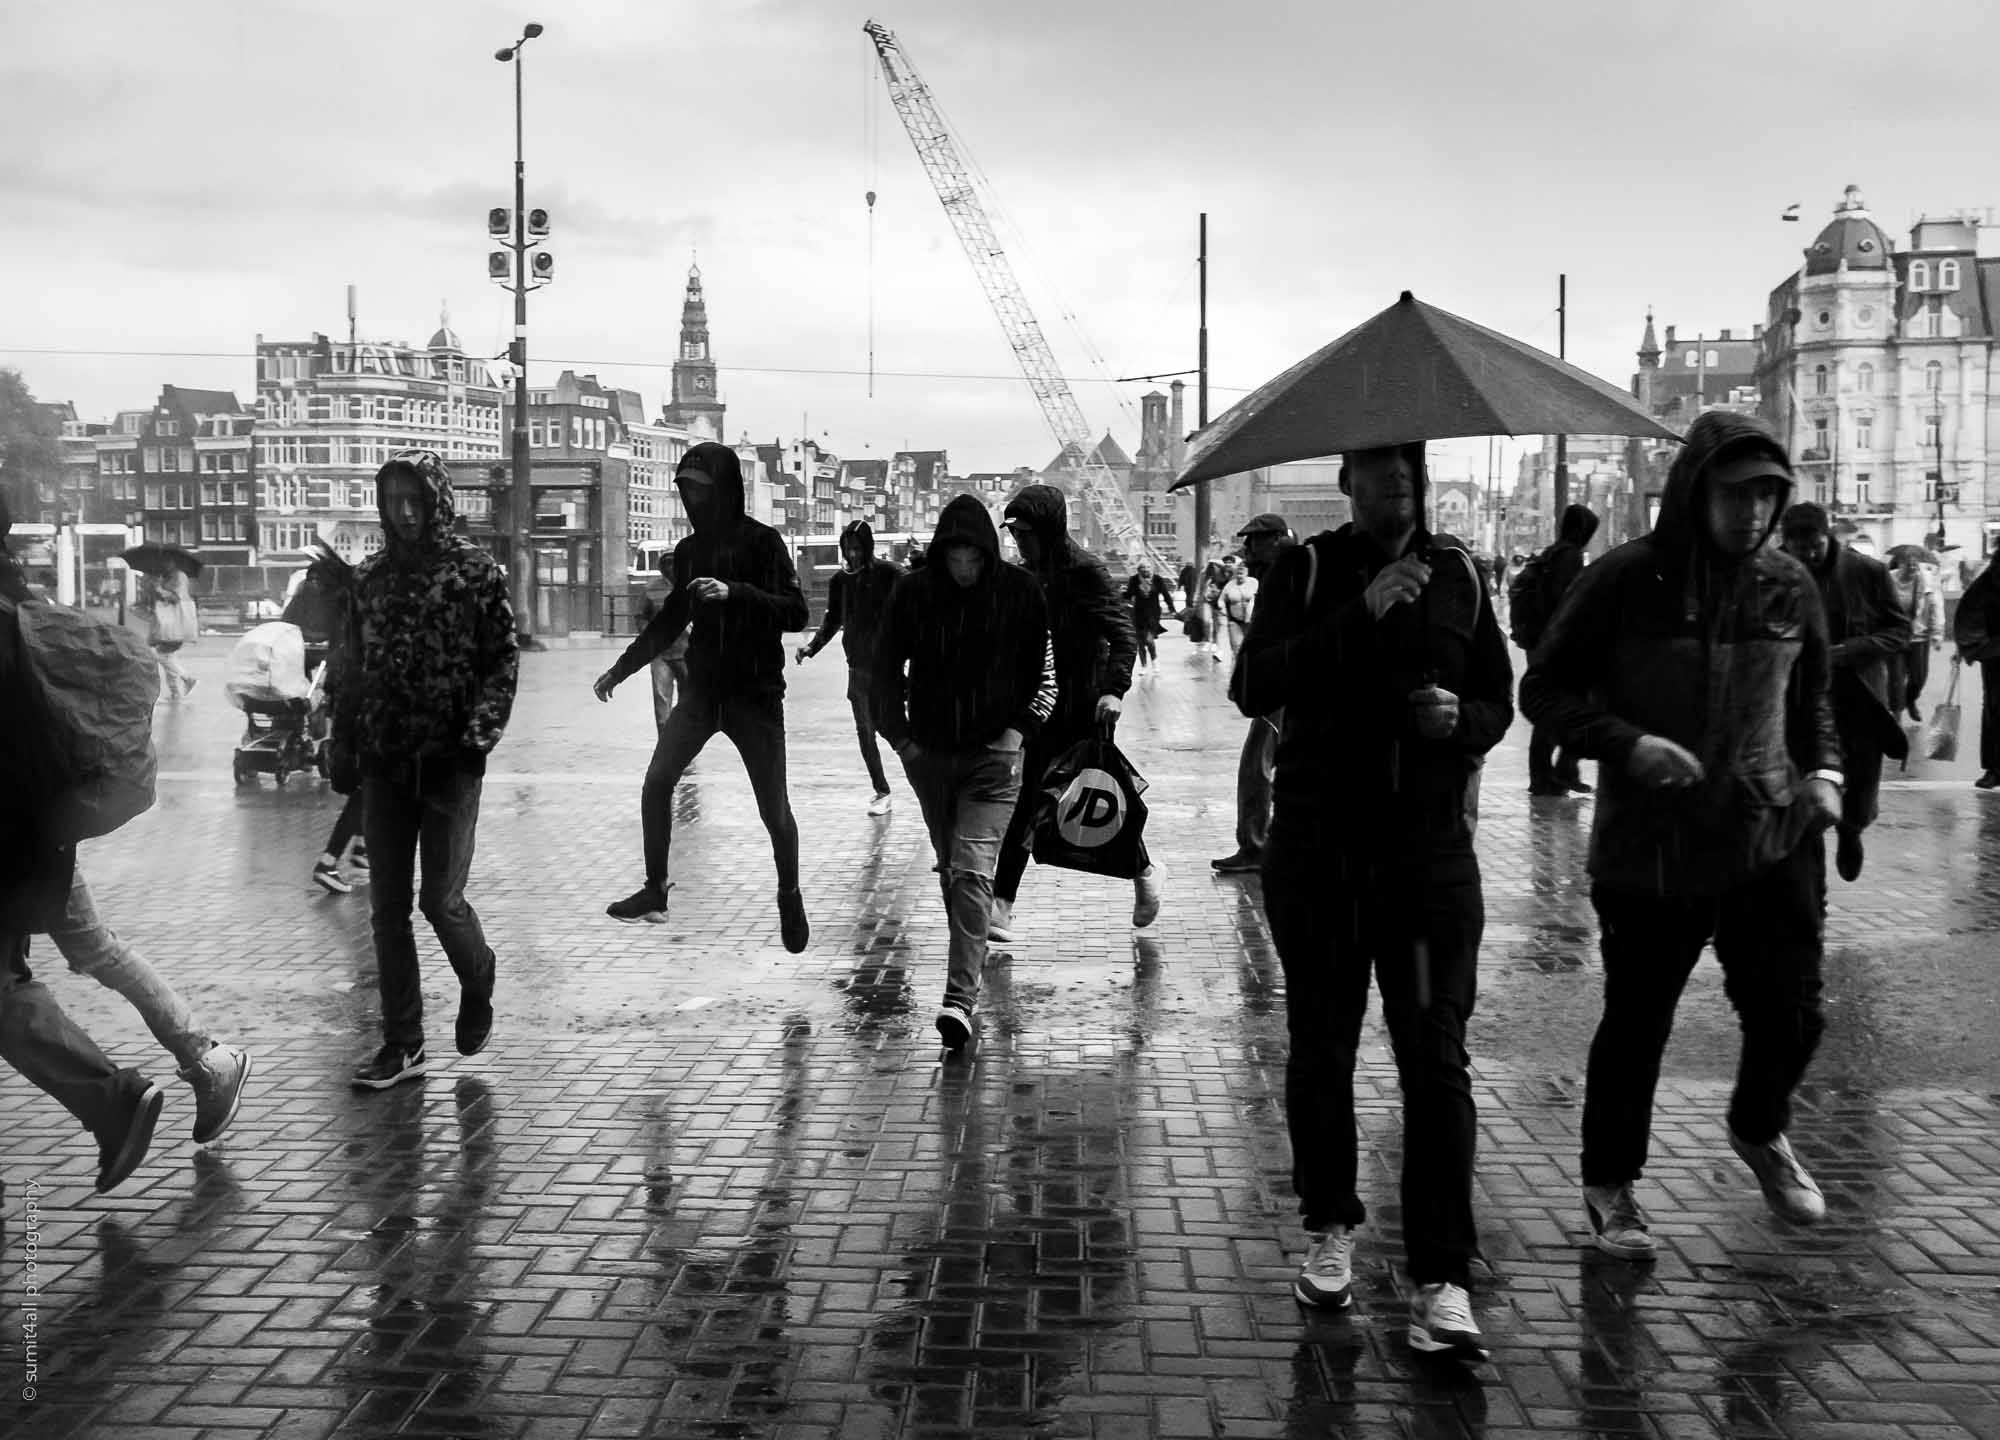 A Sudden Rain-shower has People Running for Cover in Amsterdam